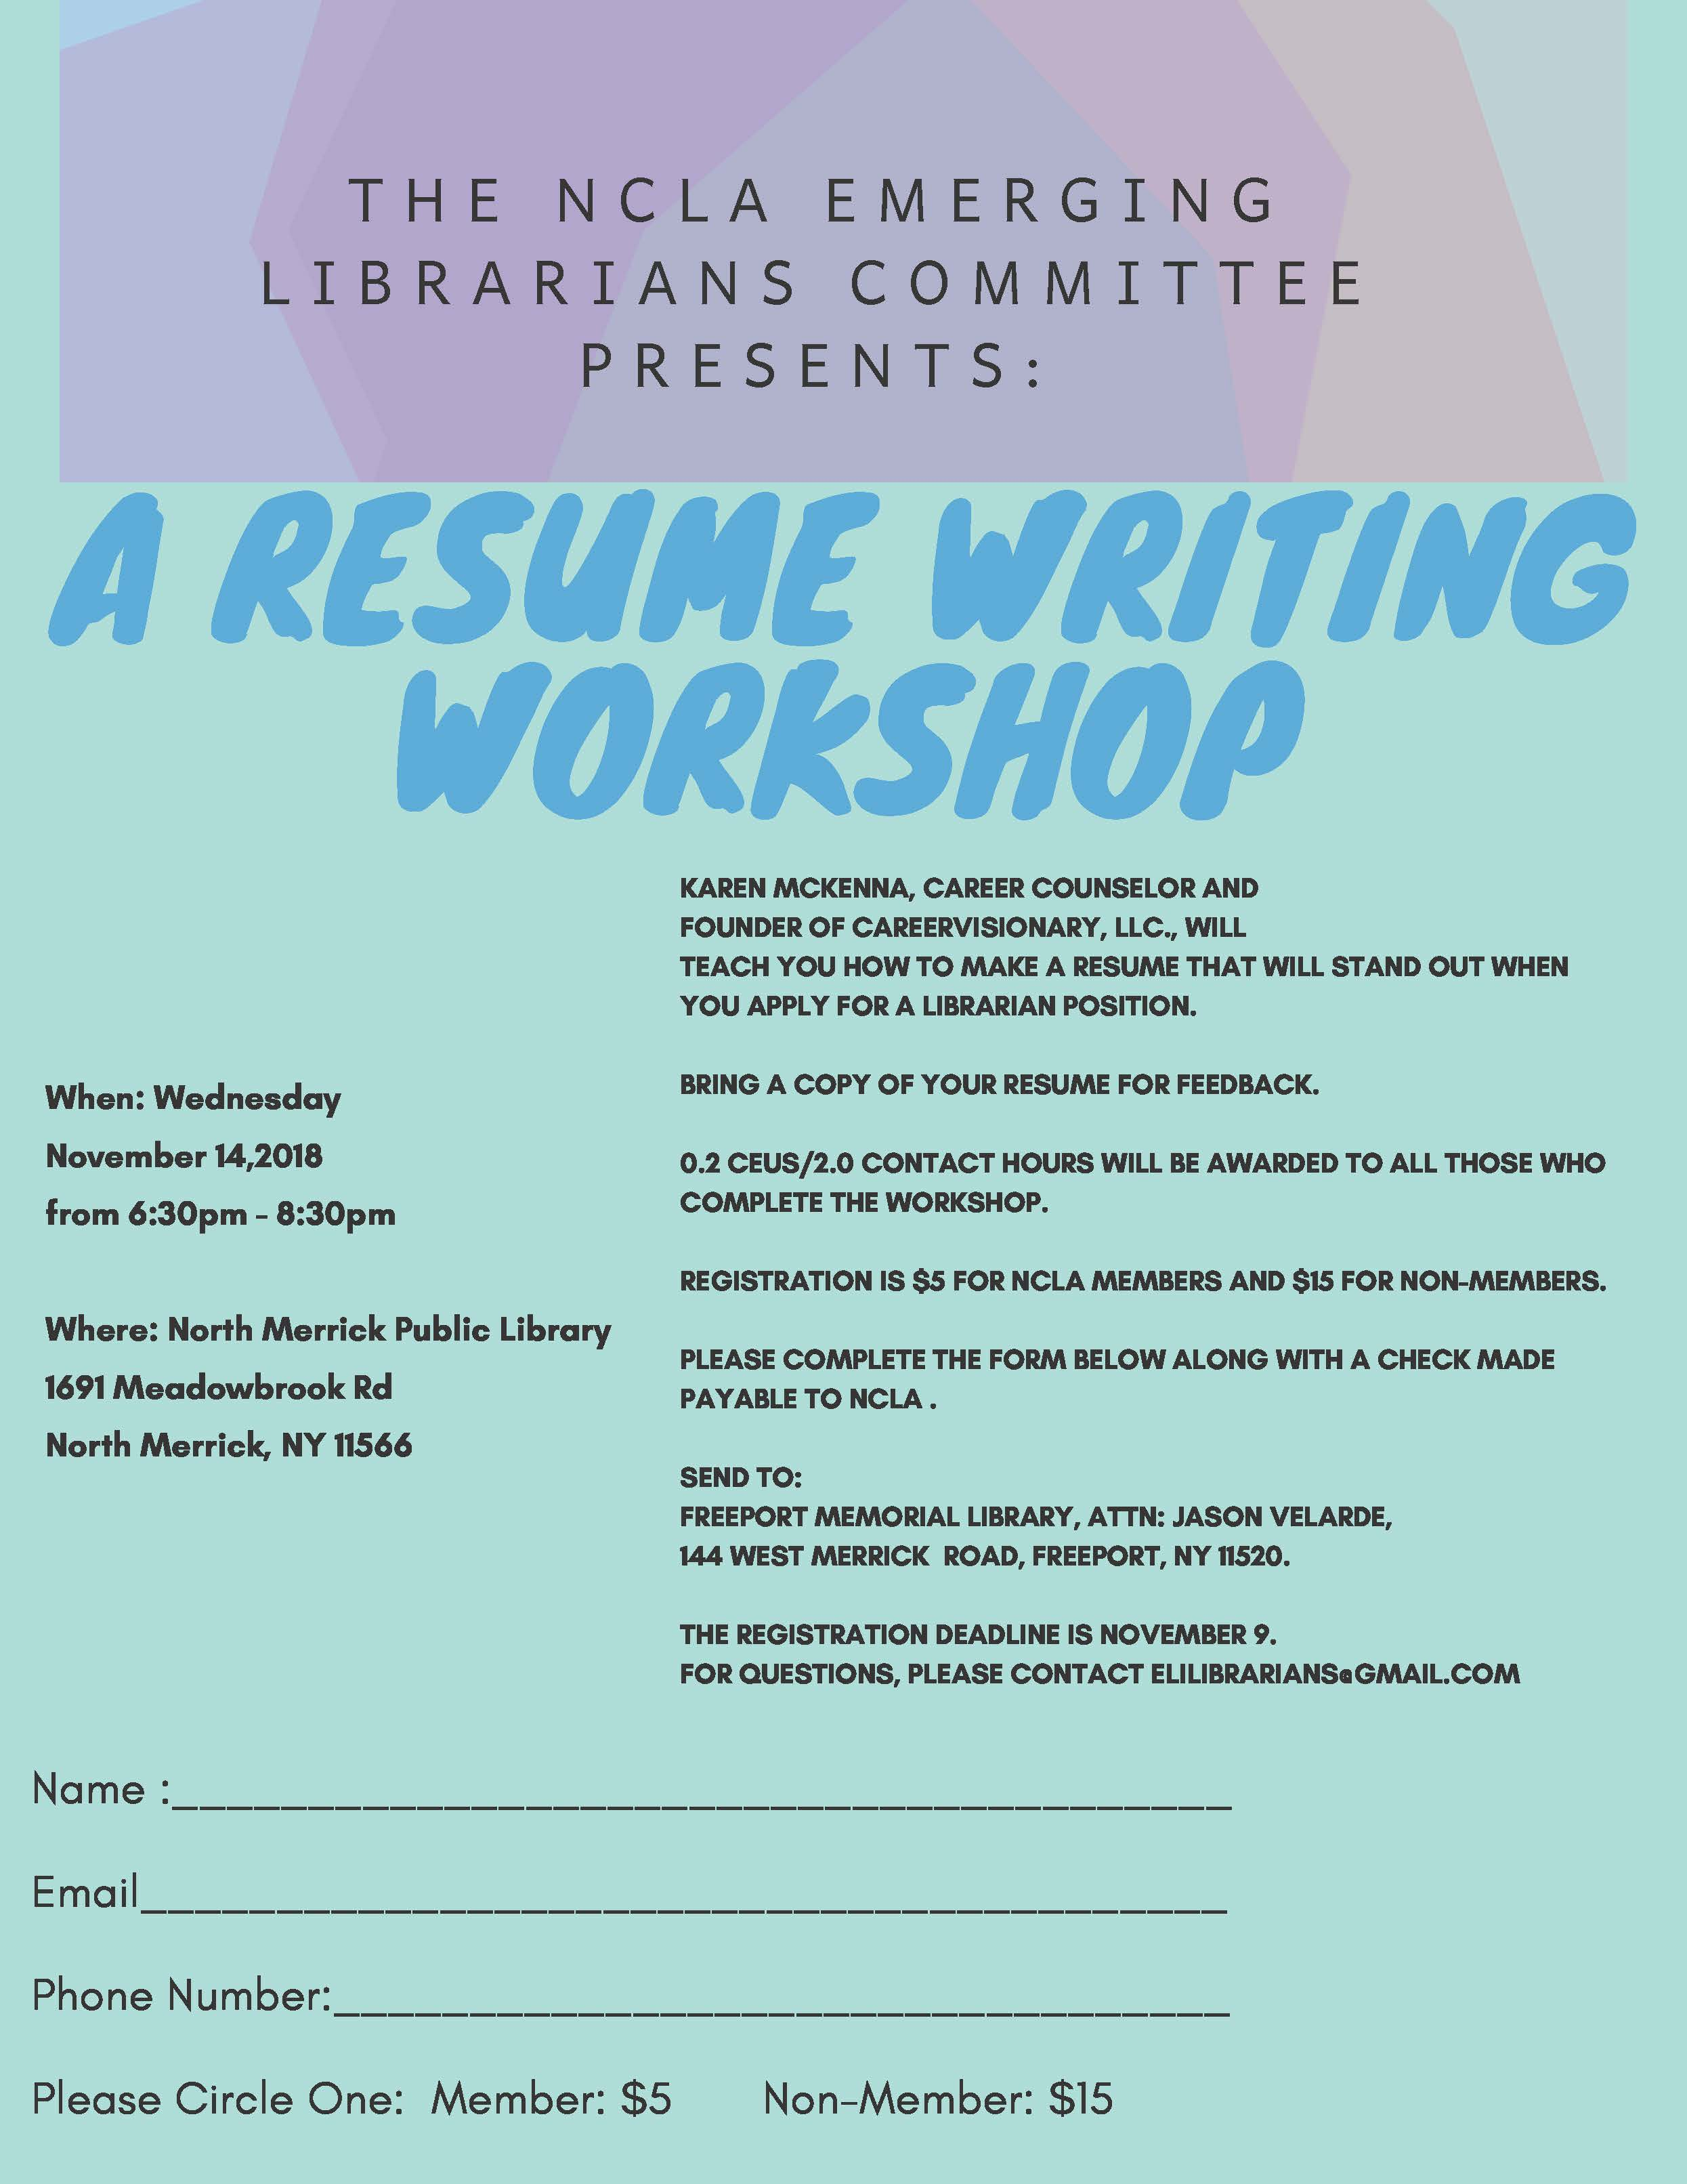 ncla emerging librarians committee presents a resume writing